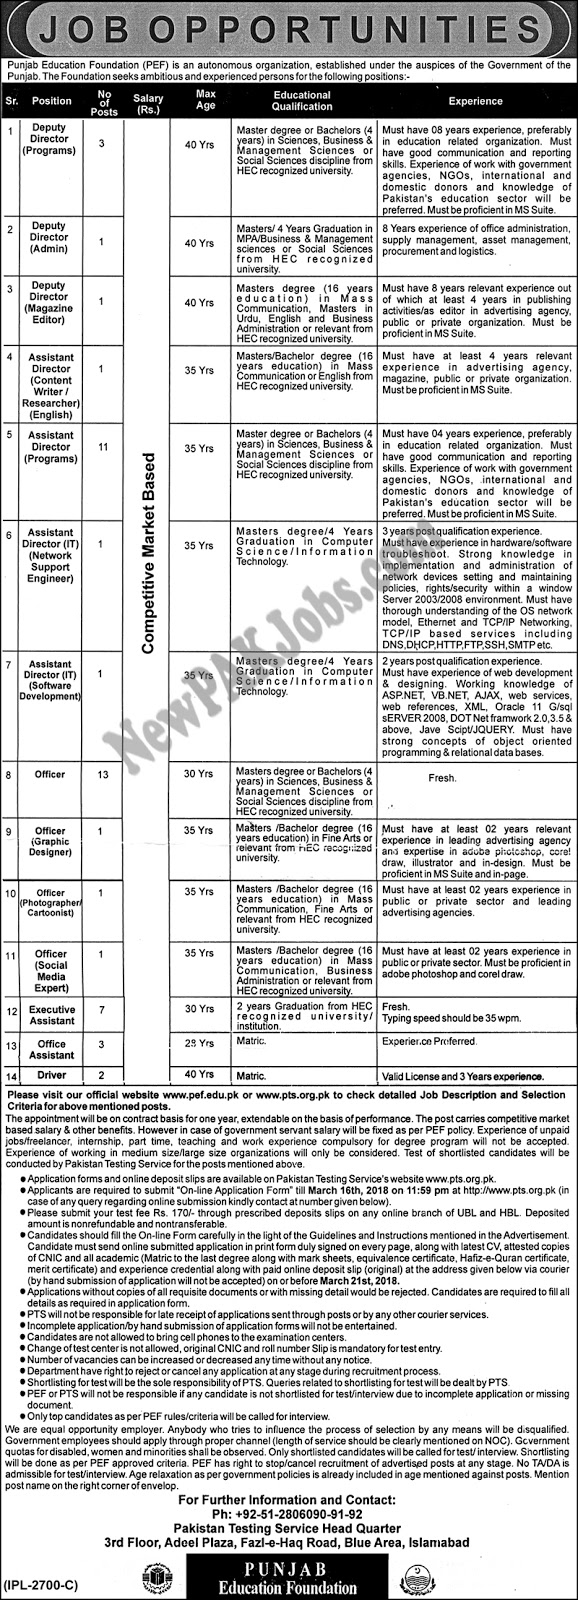 PTS Jobs in Punjab Education Foundation PEF, March 2018